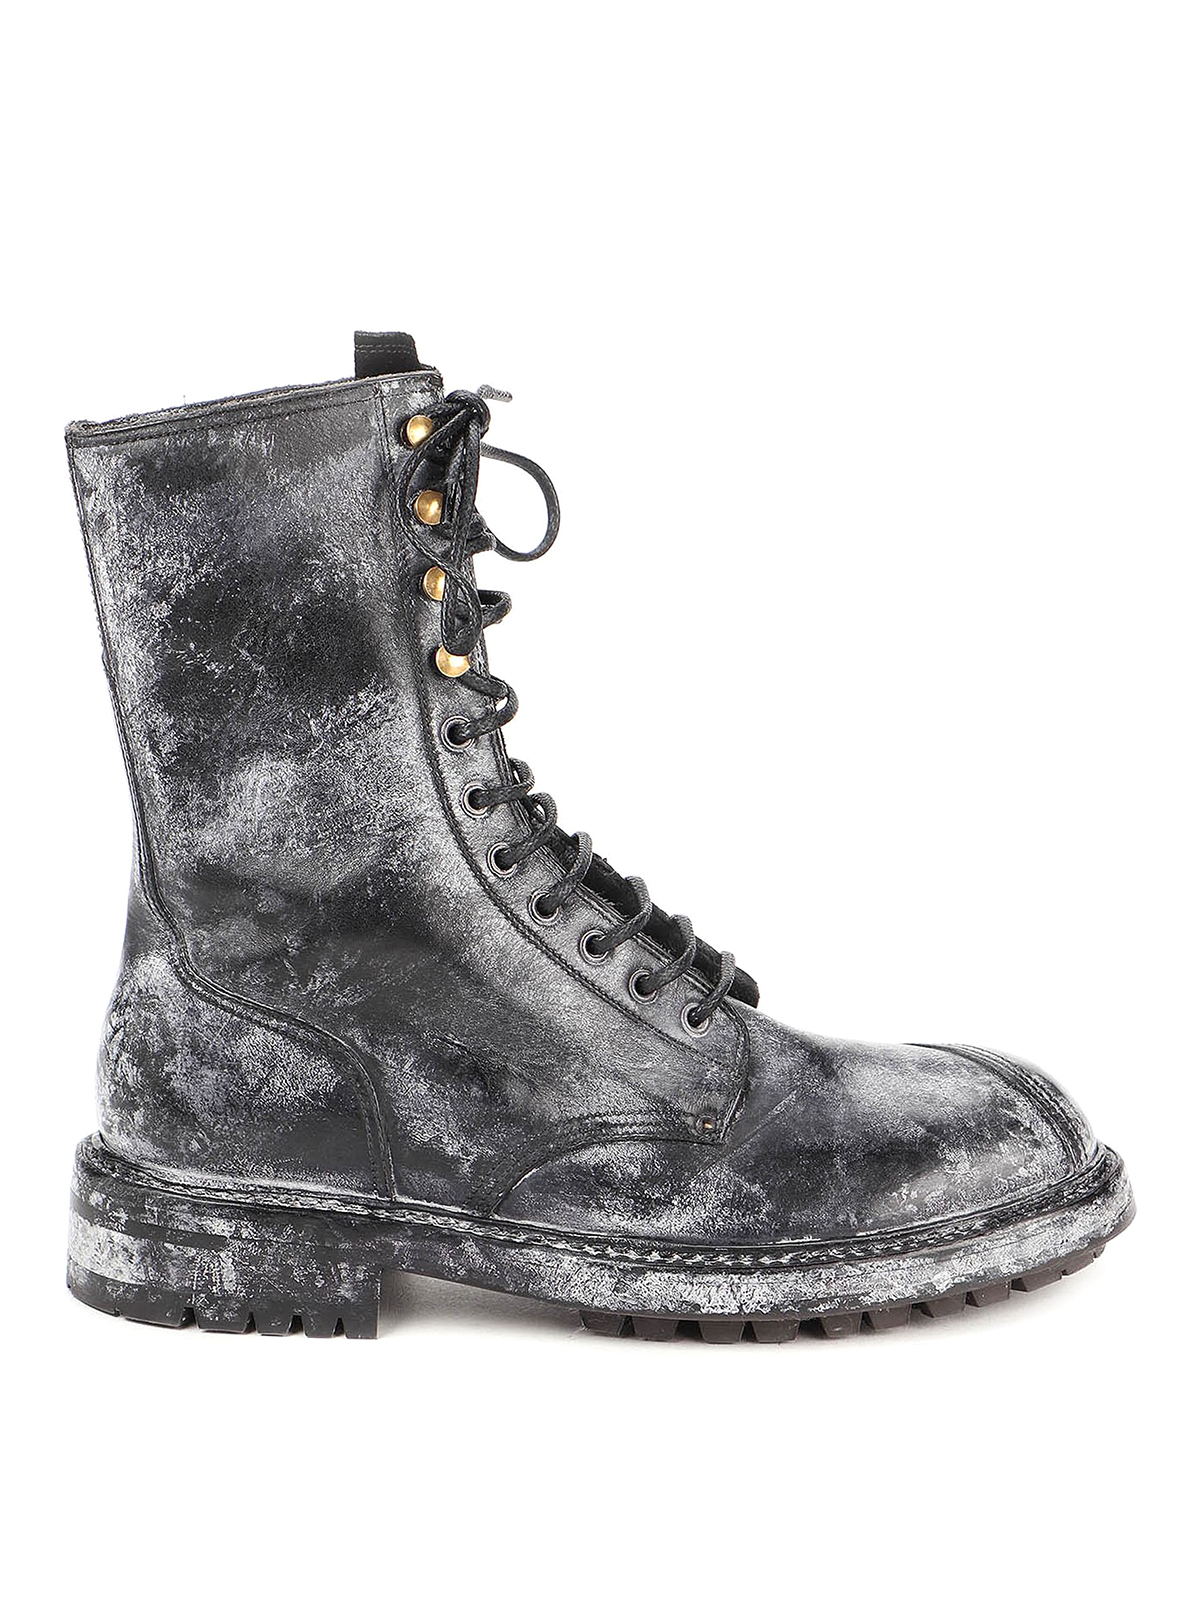 Dolce & Gabbana Leathers BERNINI VINTAGE-LOOK ANKLE BOOTS